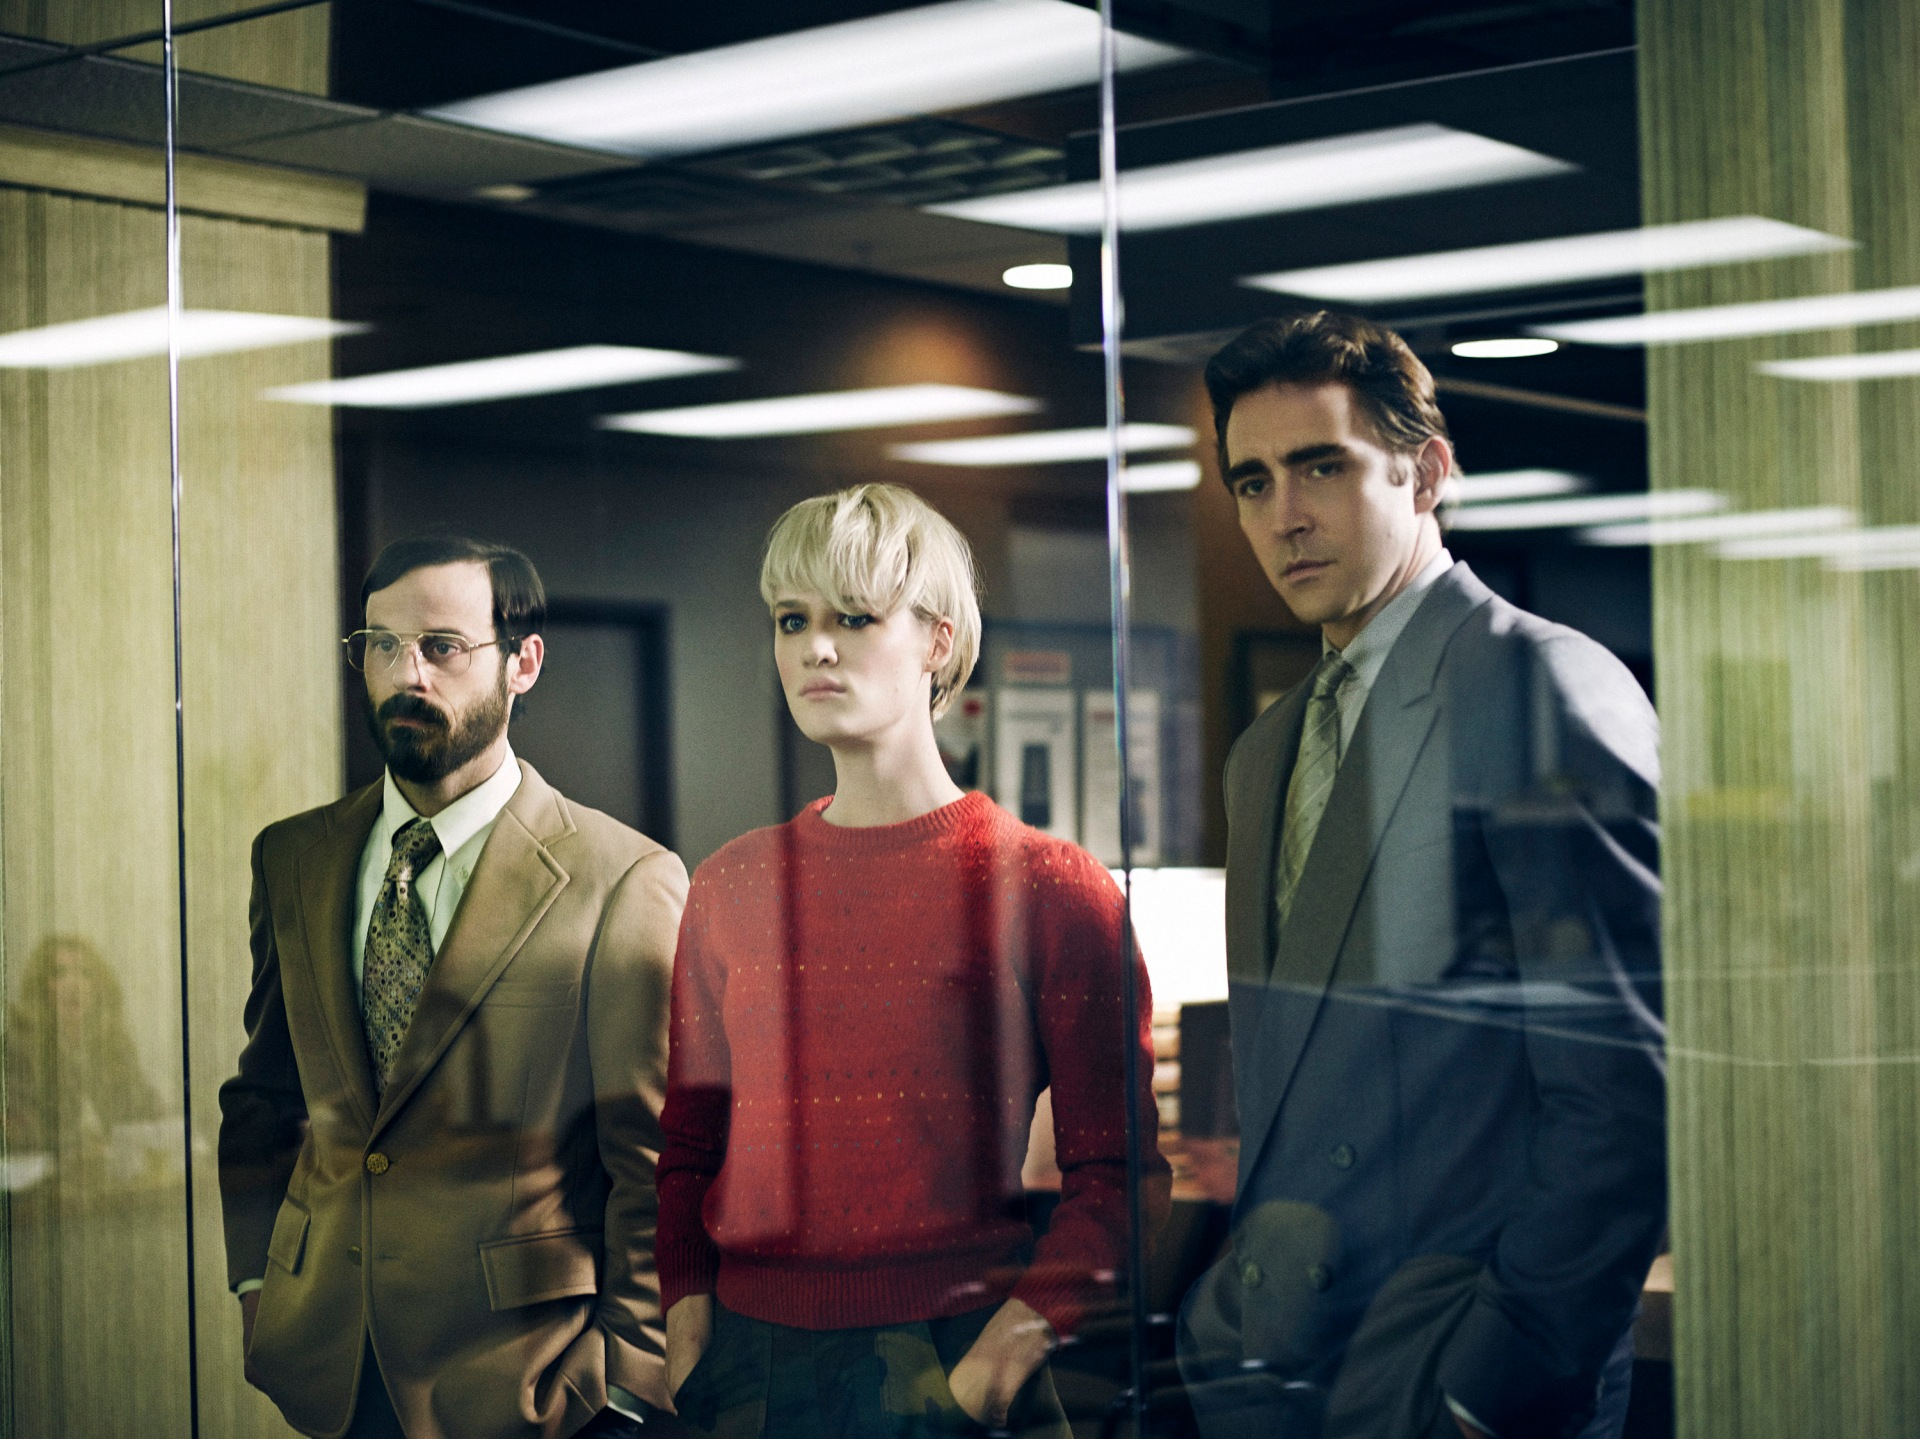 halt-and-catch-fire-heres-the-techie-meaning-behind-the-title-of-amcs-new-show